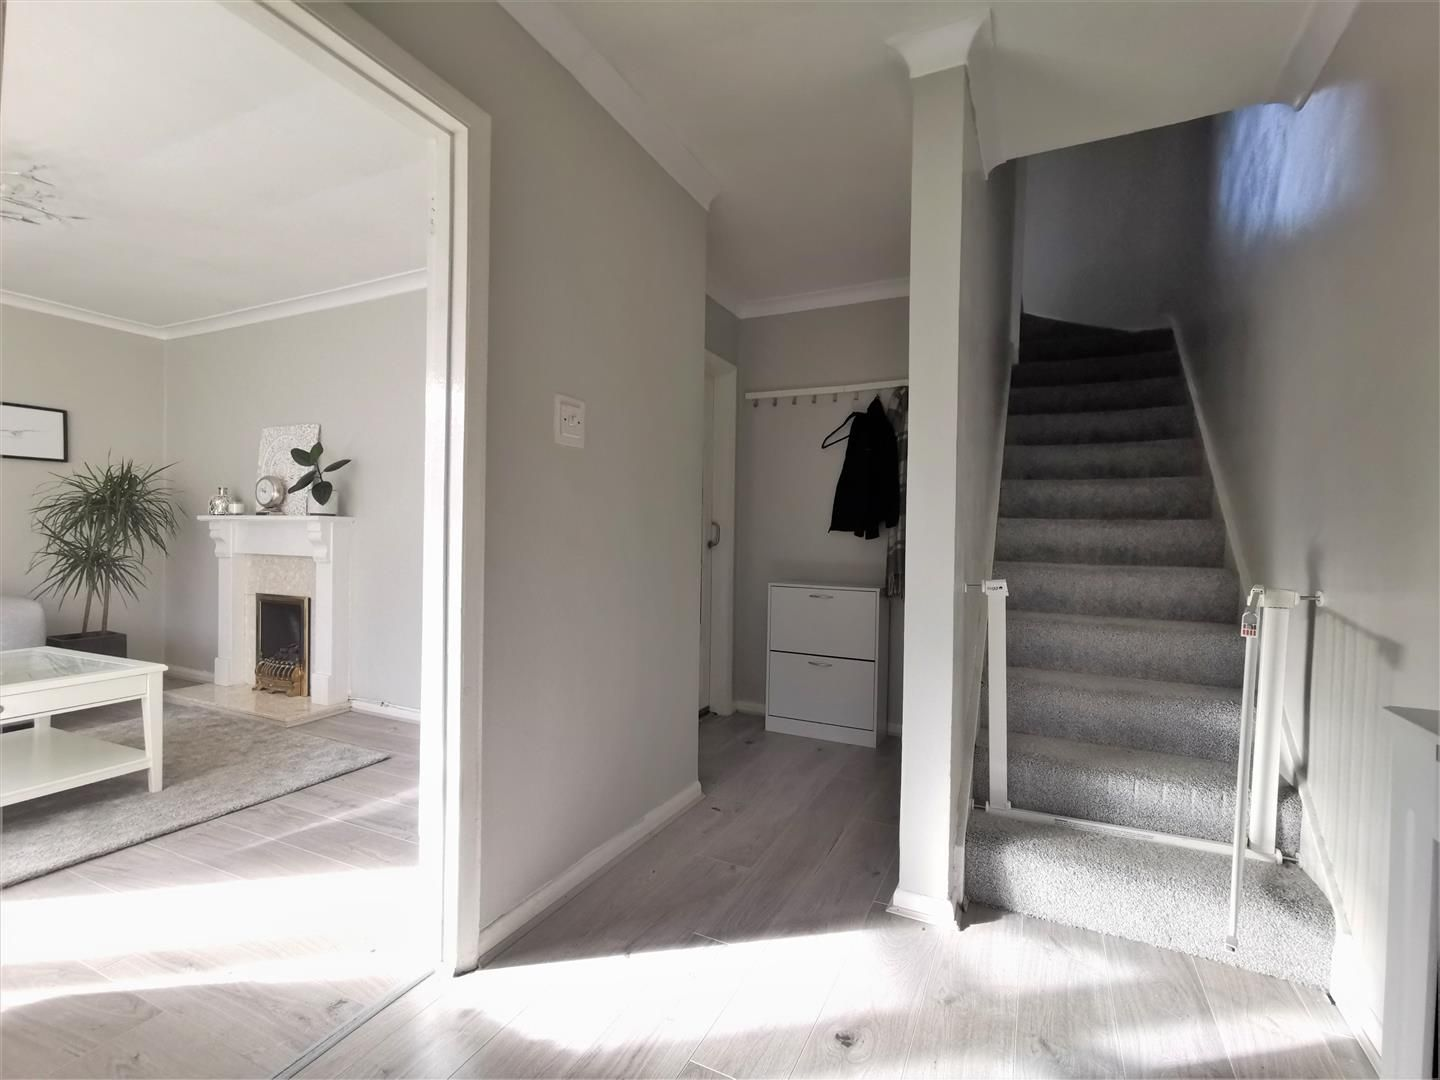 3 bed end-of-terrace for sale in Hereford 8